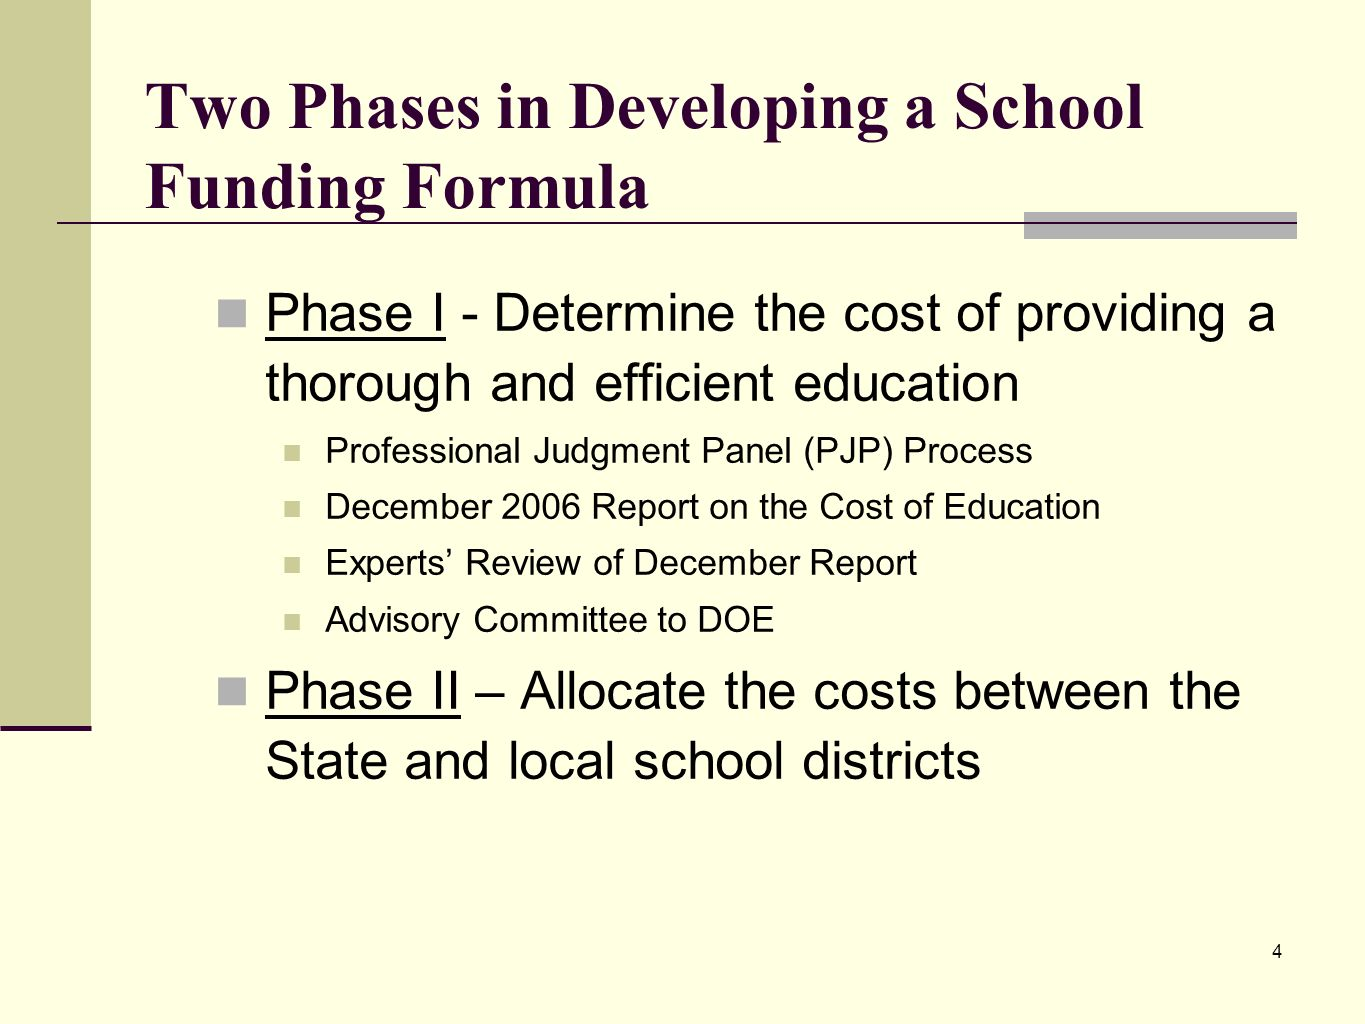 4 Two Phases in Developing a School Funding Formula Phase I - Determine the cost of providing a thorough and efficient education Professional Judgment